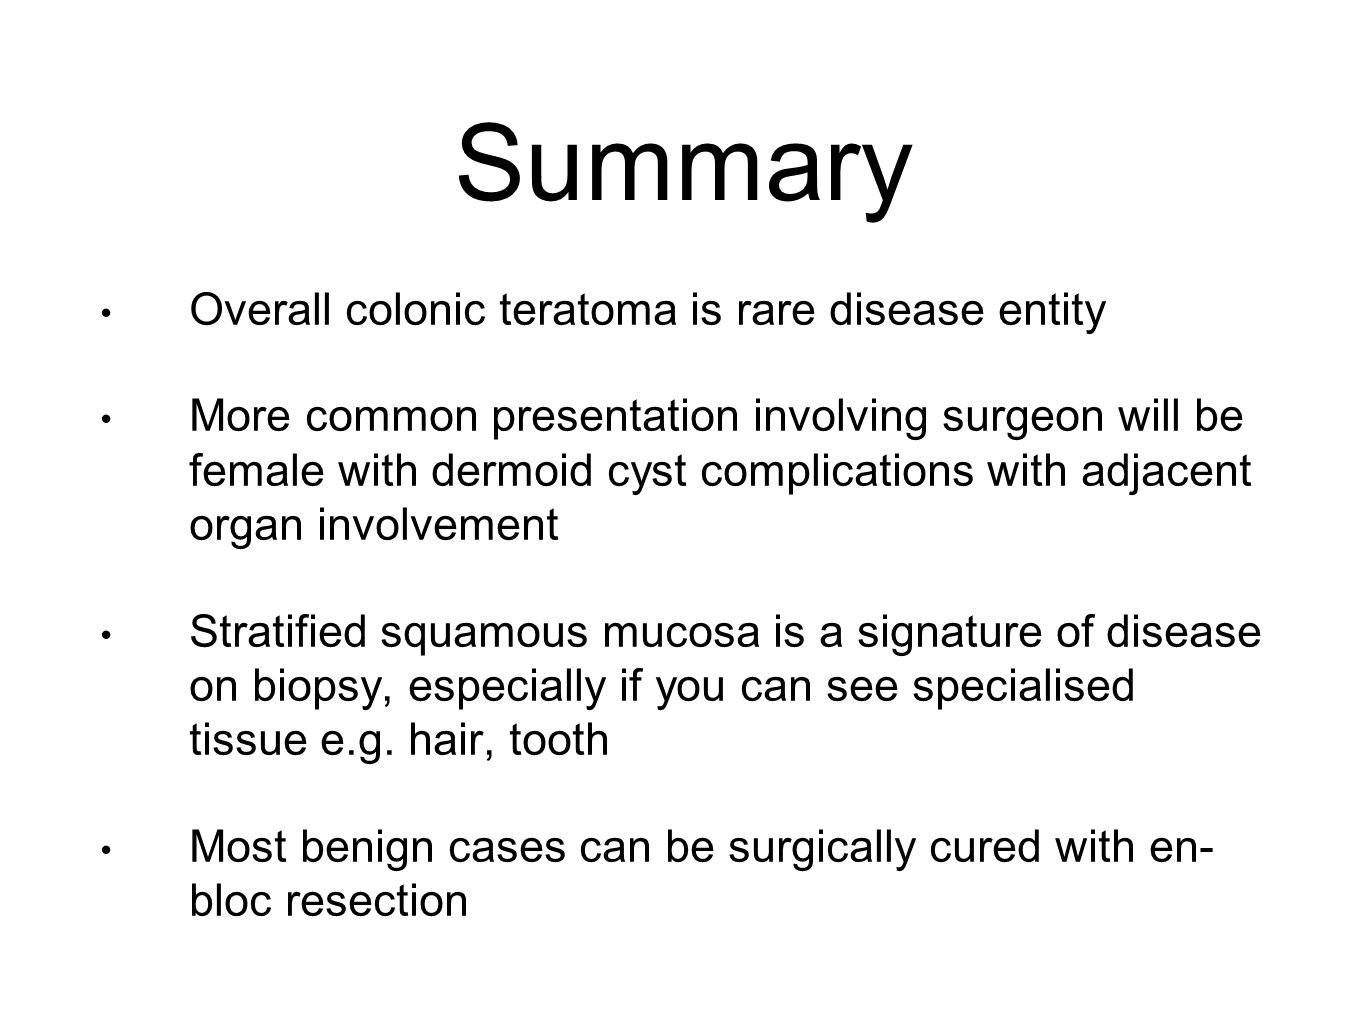 Summary Overall colonic teratoma is rare disease entity More common presentation involving surgeon will be female with dermoid cyst complications with adjacent organ involvement Stratified squamous mucosa is a signature of disease on biopsy, especially if you can see specialised tissue e.g.